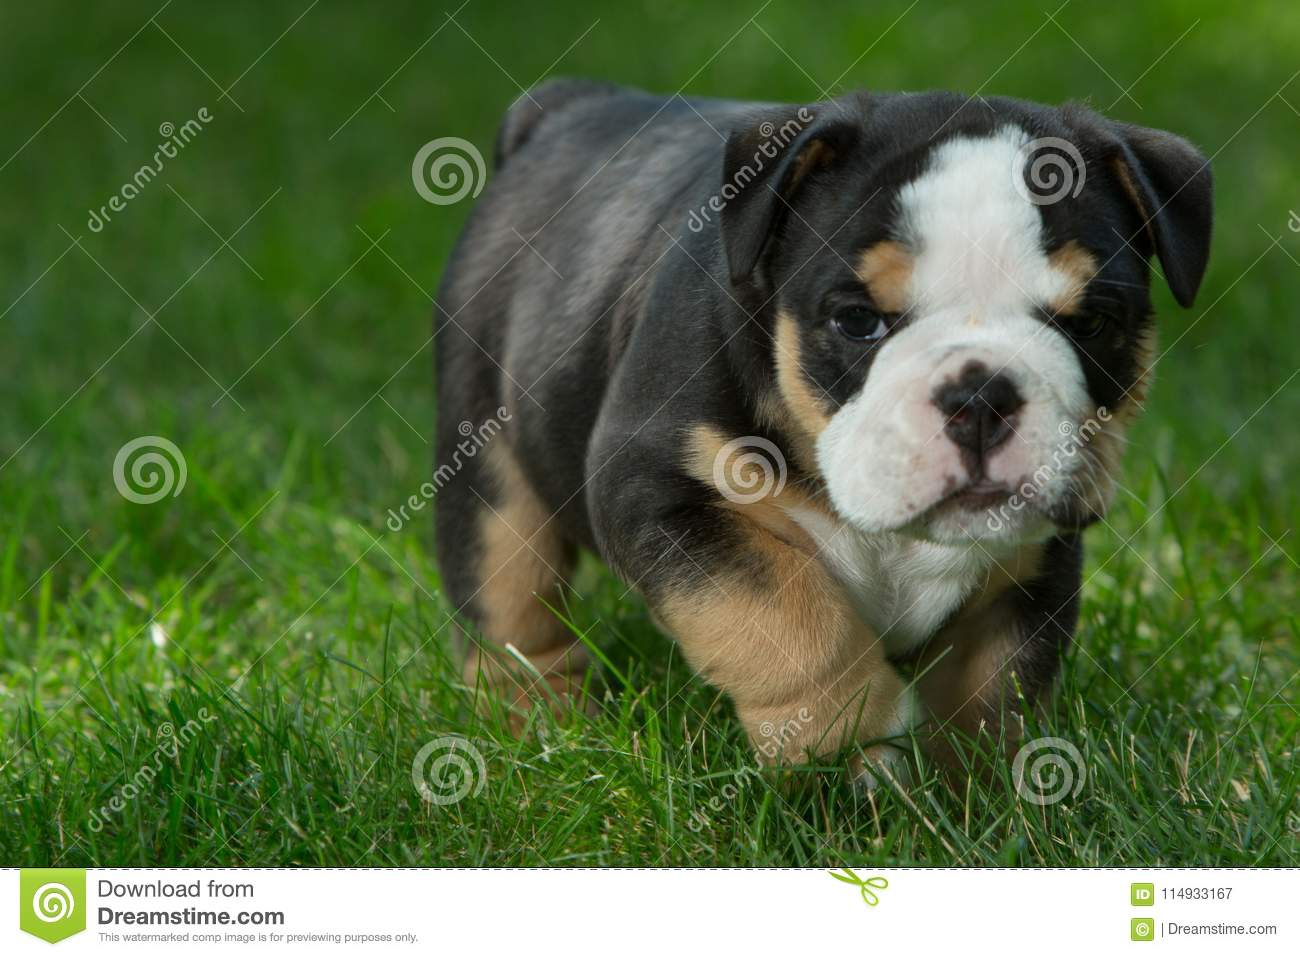 Cute Brown And Black Wrinkled Bulldog Puppy In The Grass Looking At Something Stock Image Image Of Play Cute 114933167